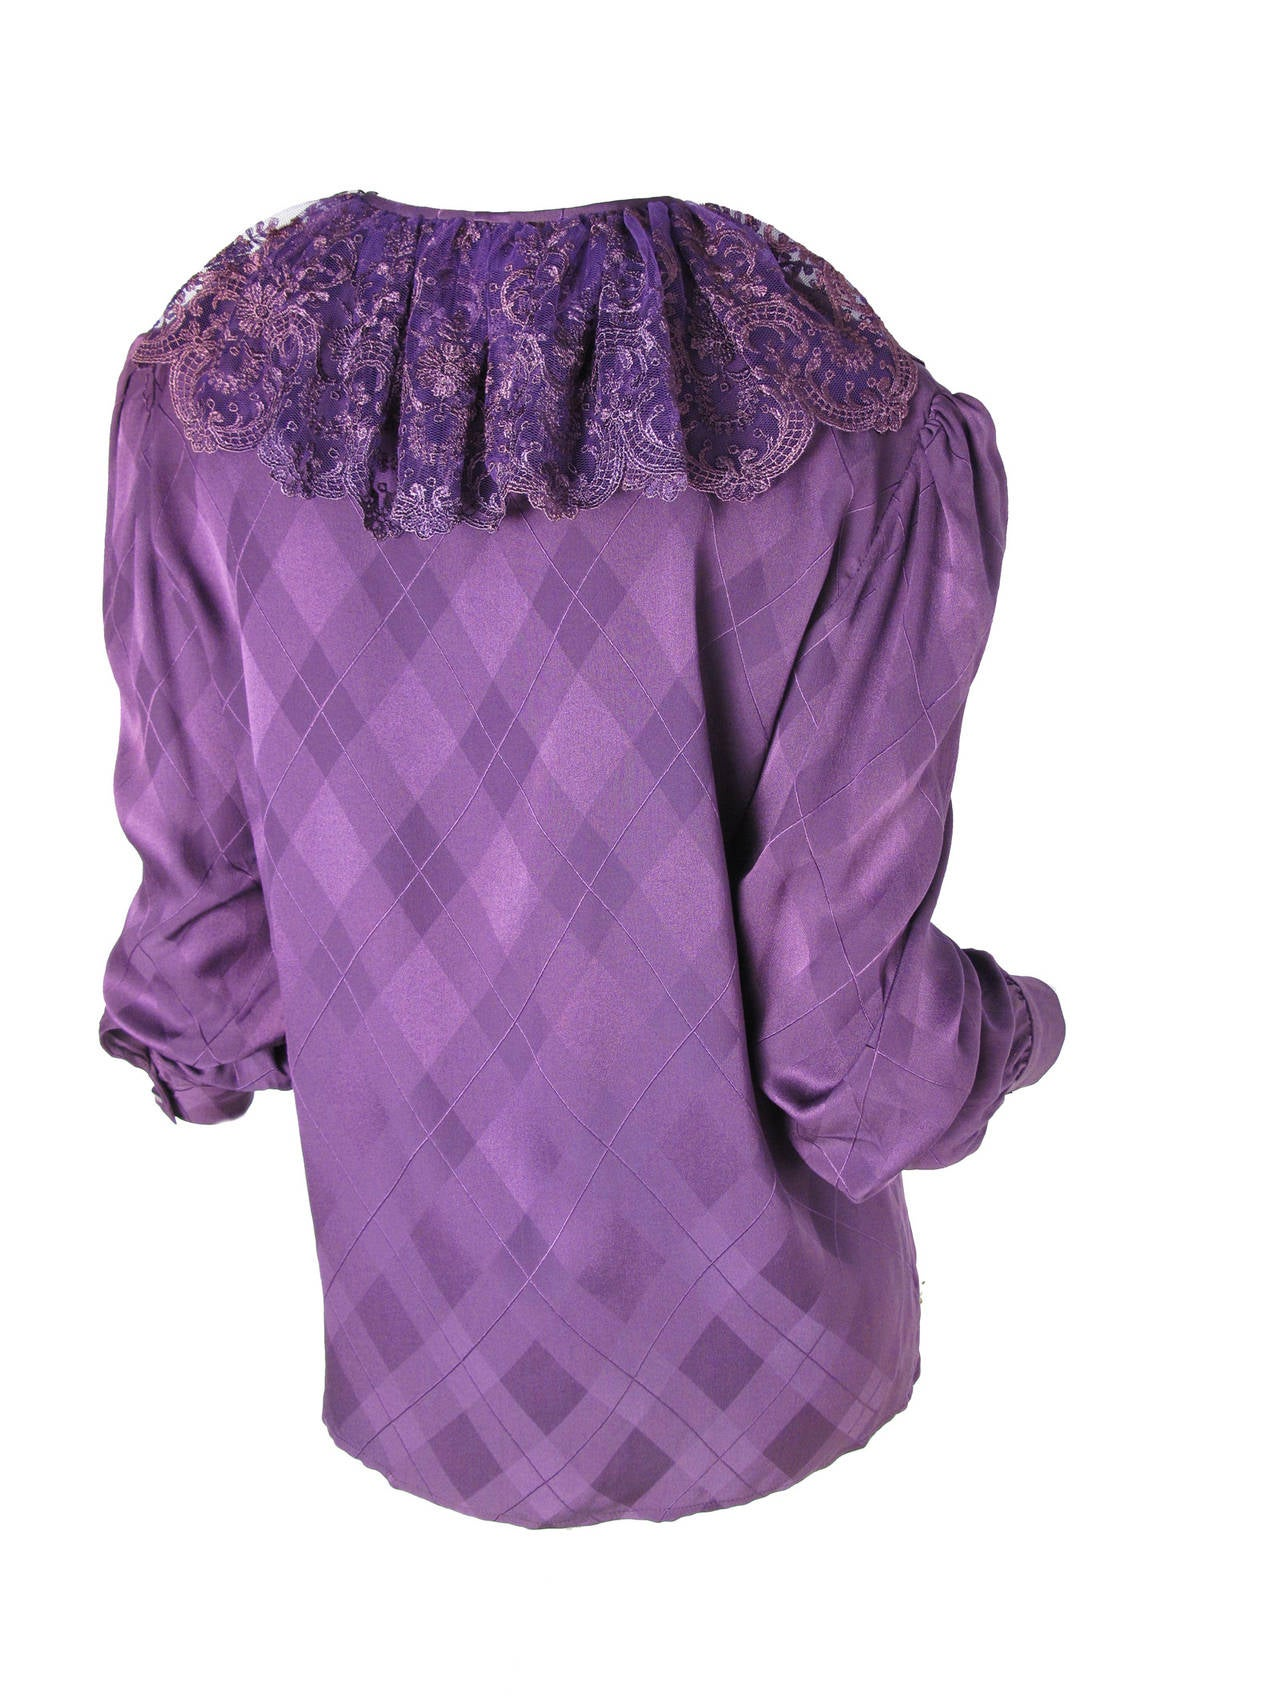 Valentino Purple Silk Blouse with Lace Collar In Excellent Condition For Sale In Austin, TX